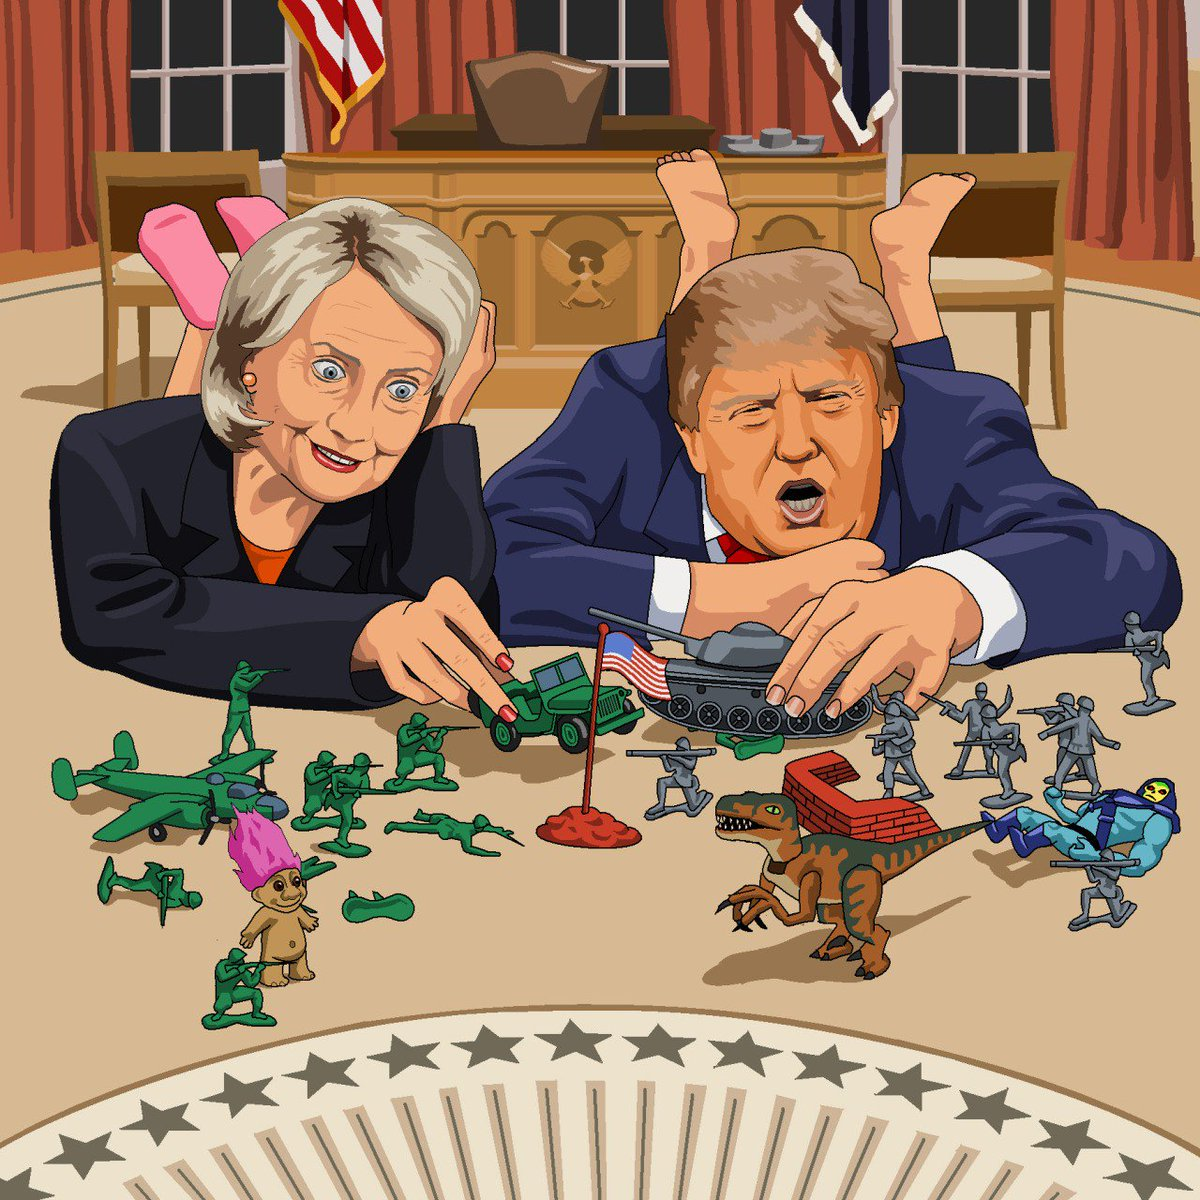 Image result for trump playing with toy soldiers